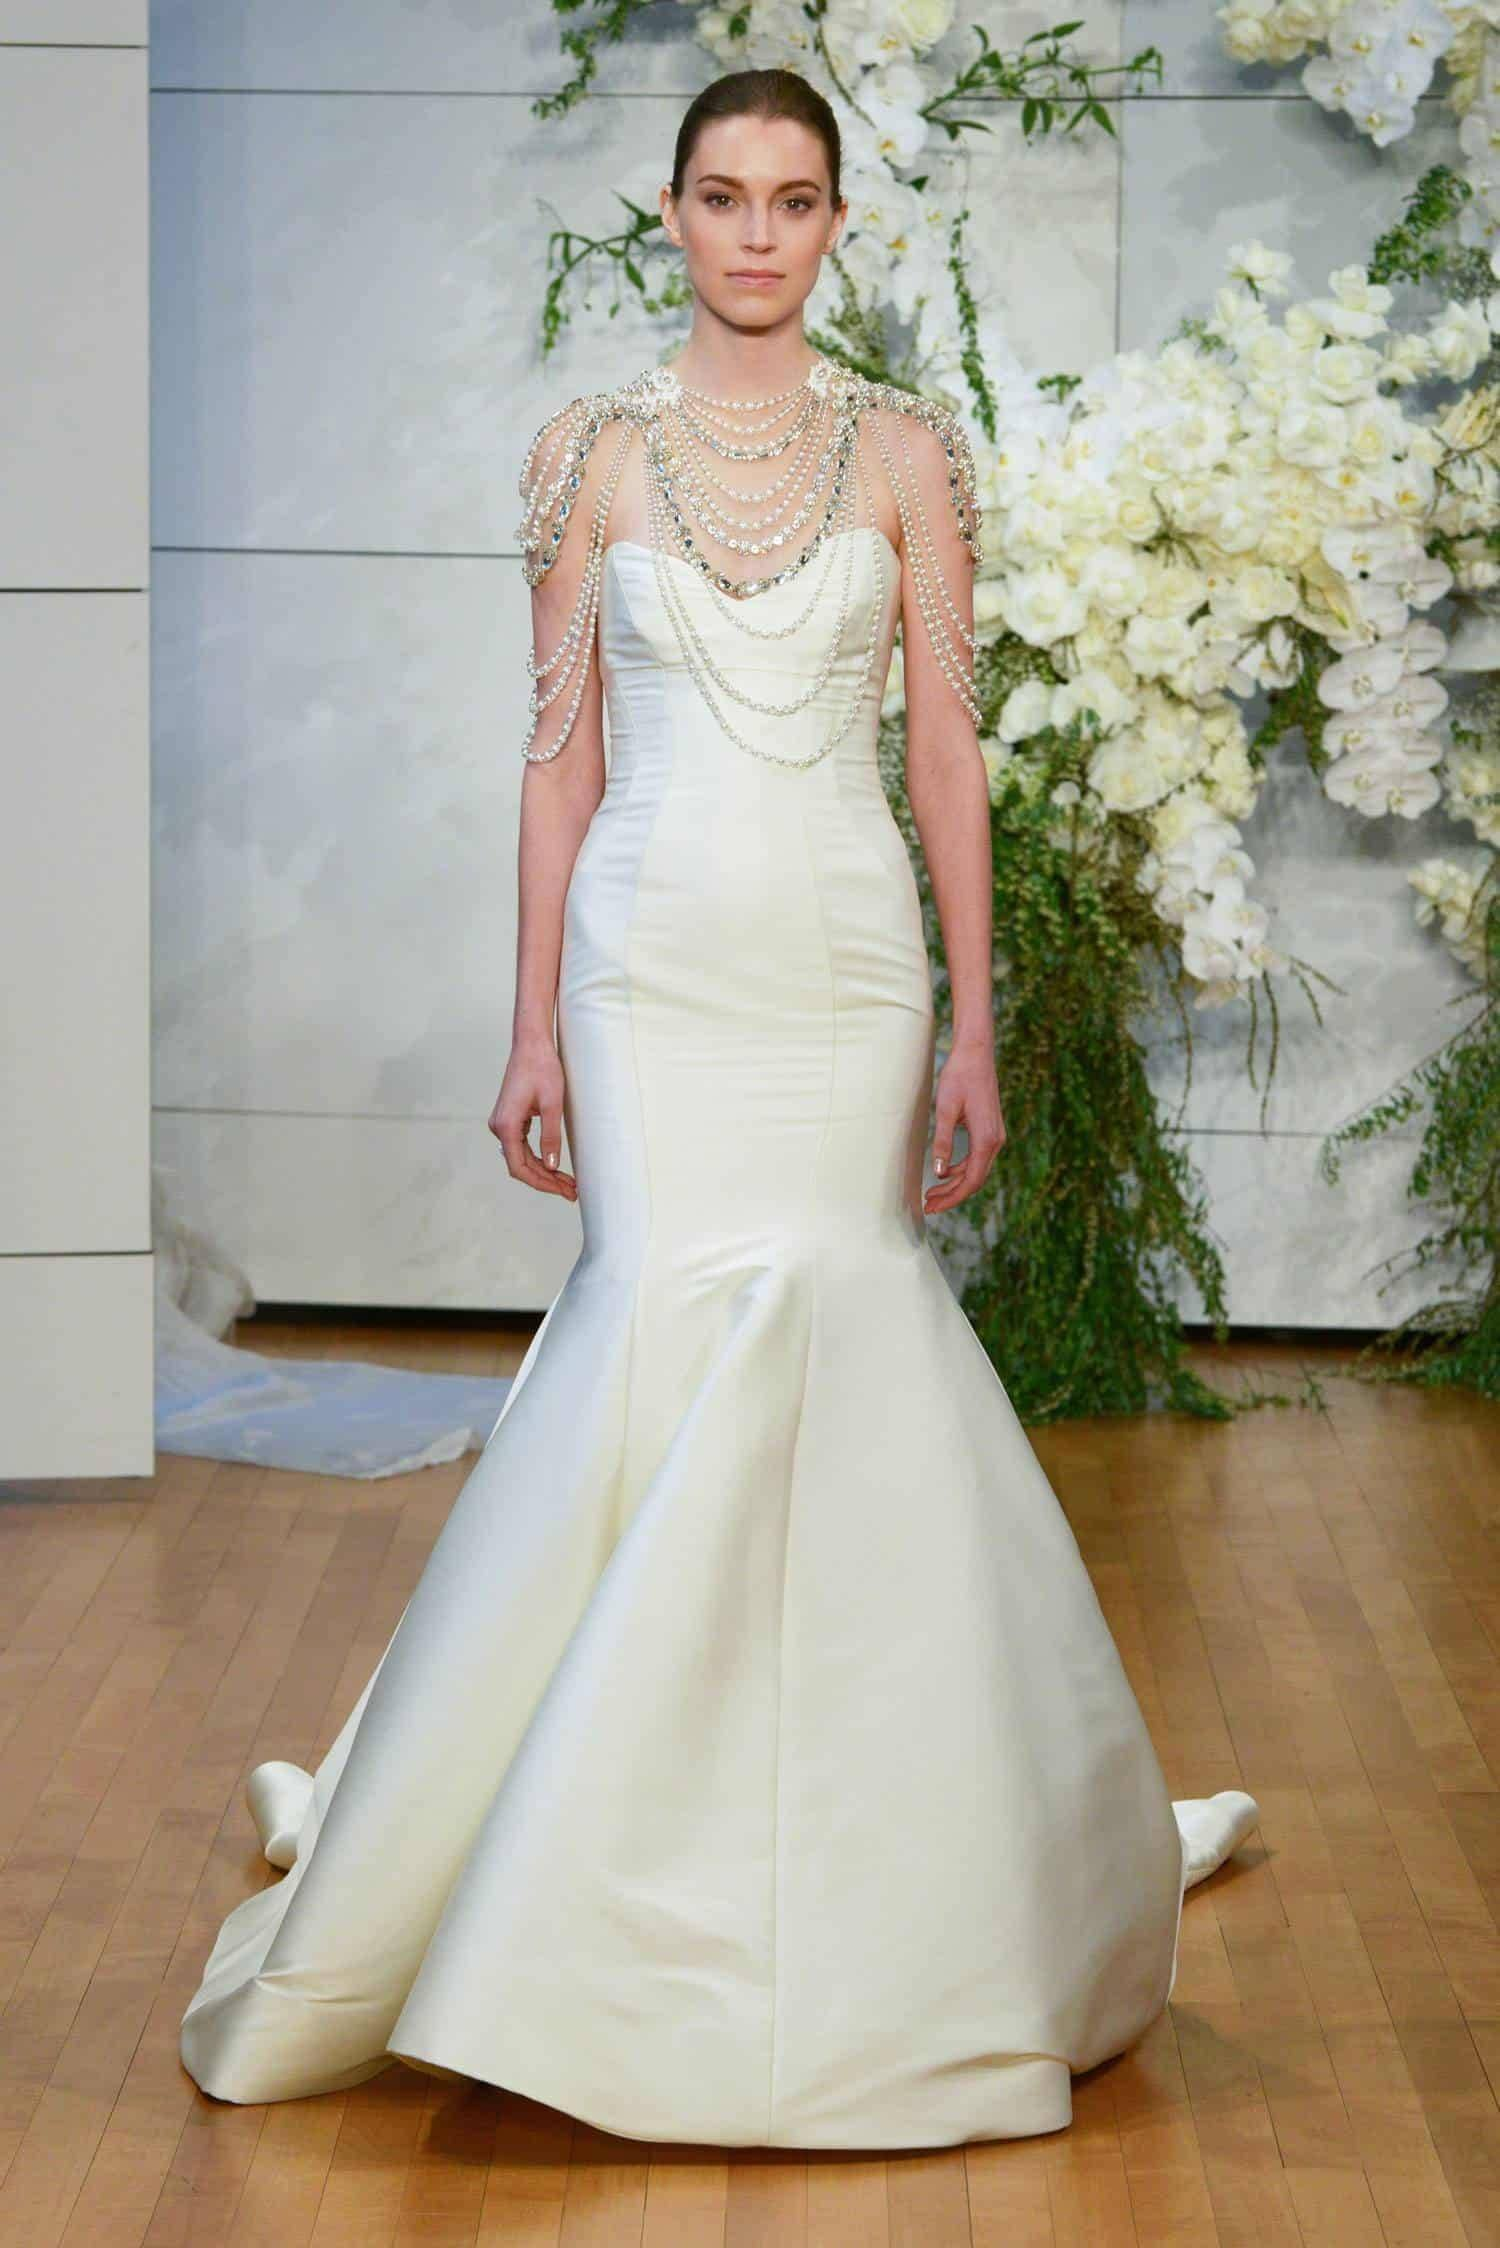 2018 Wedding Dress Trends